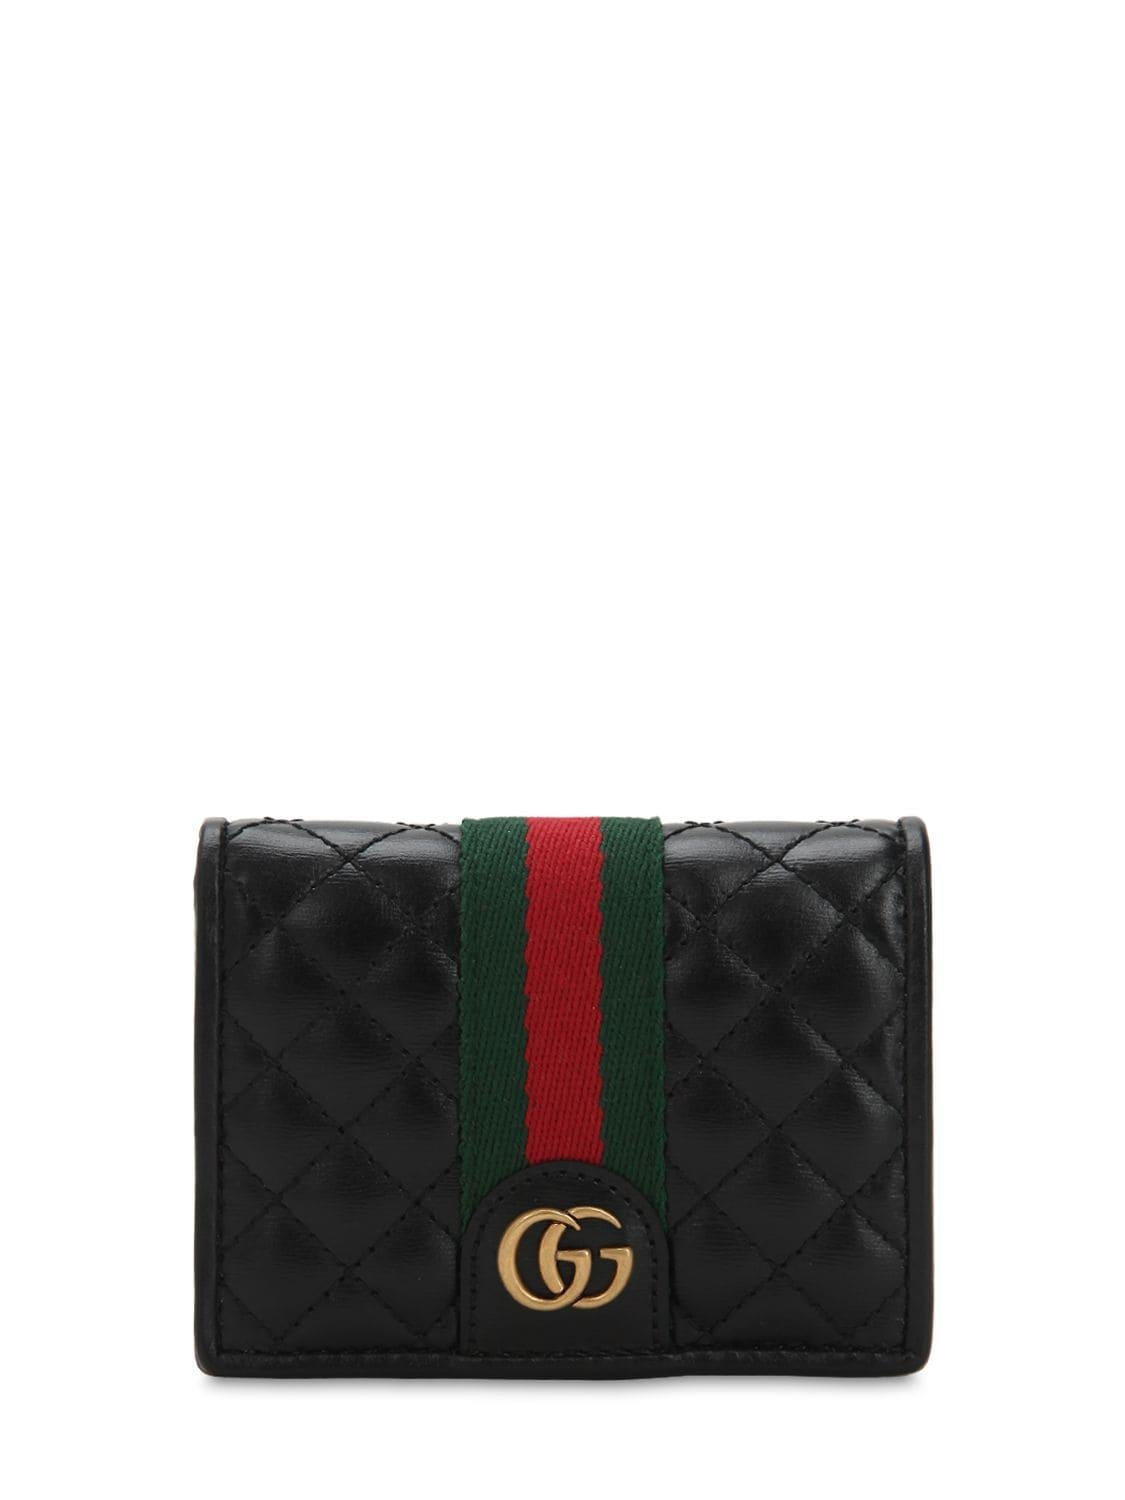 83d302e53849 Lyst - Gucci Quilted Leather Wallet in Black